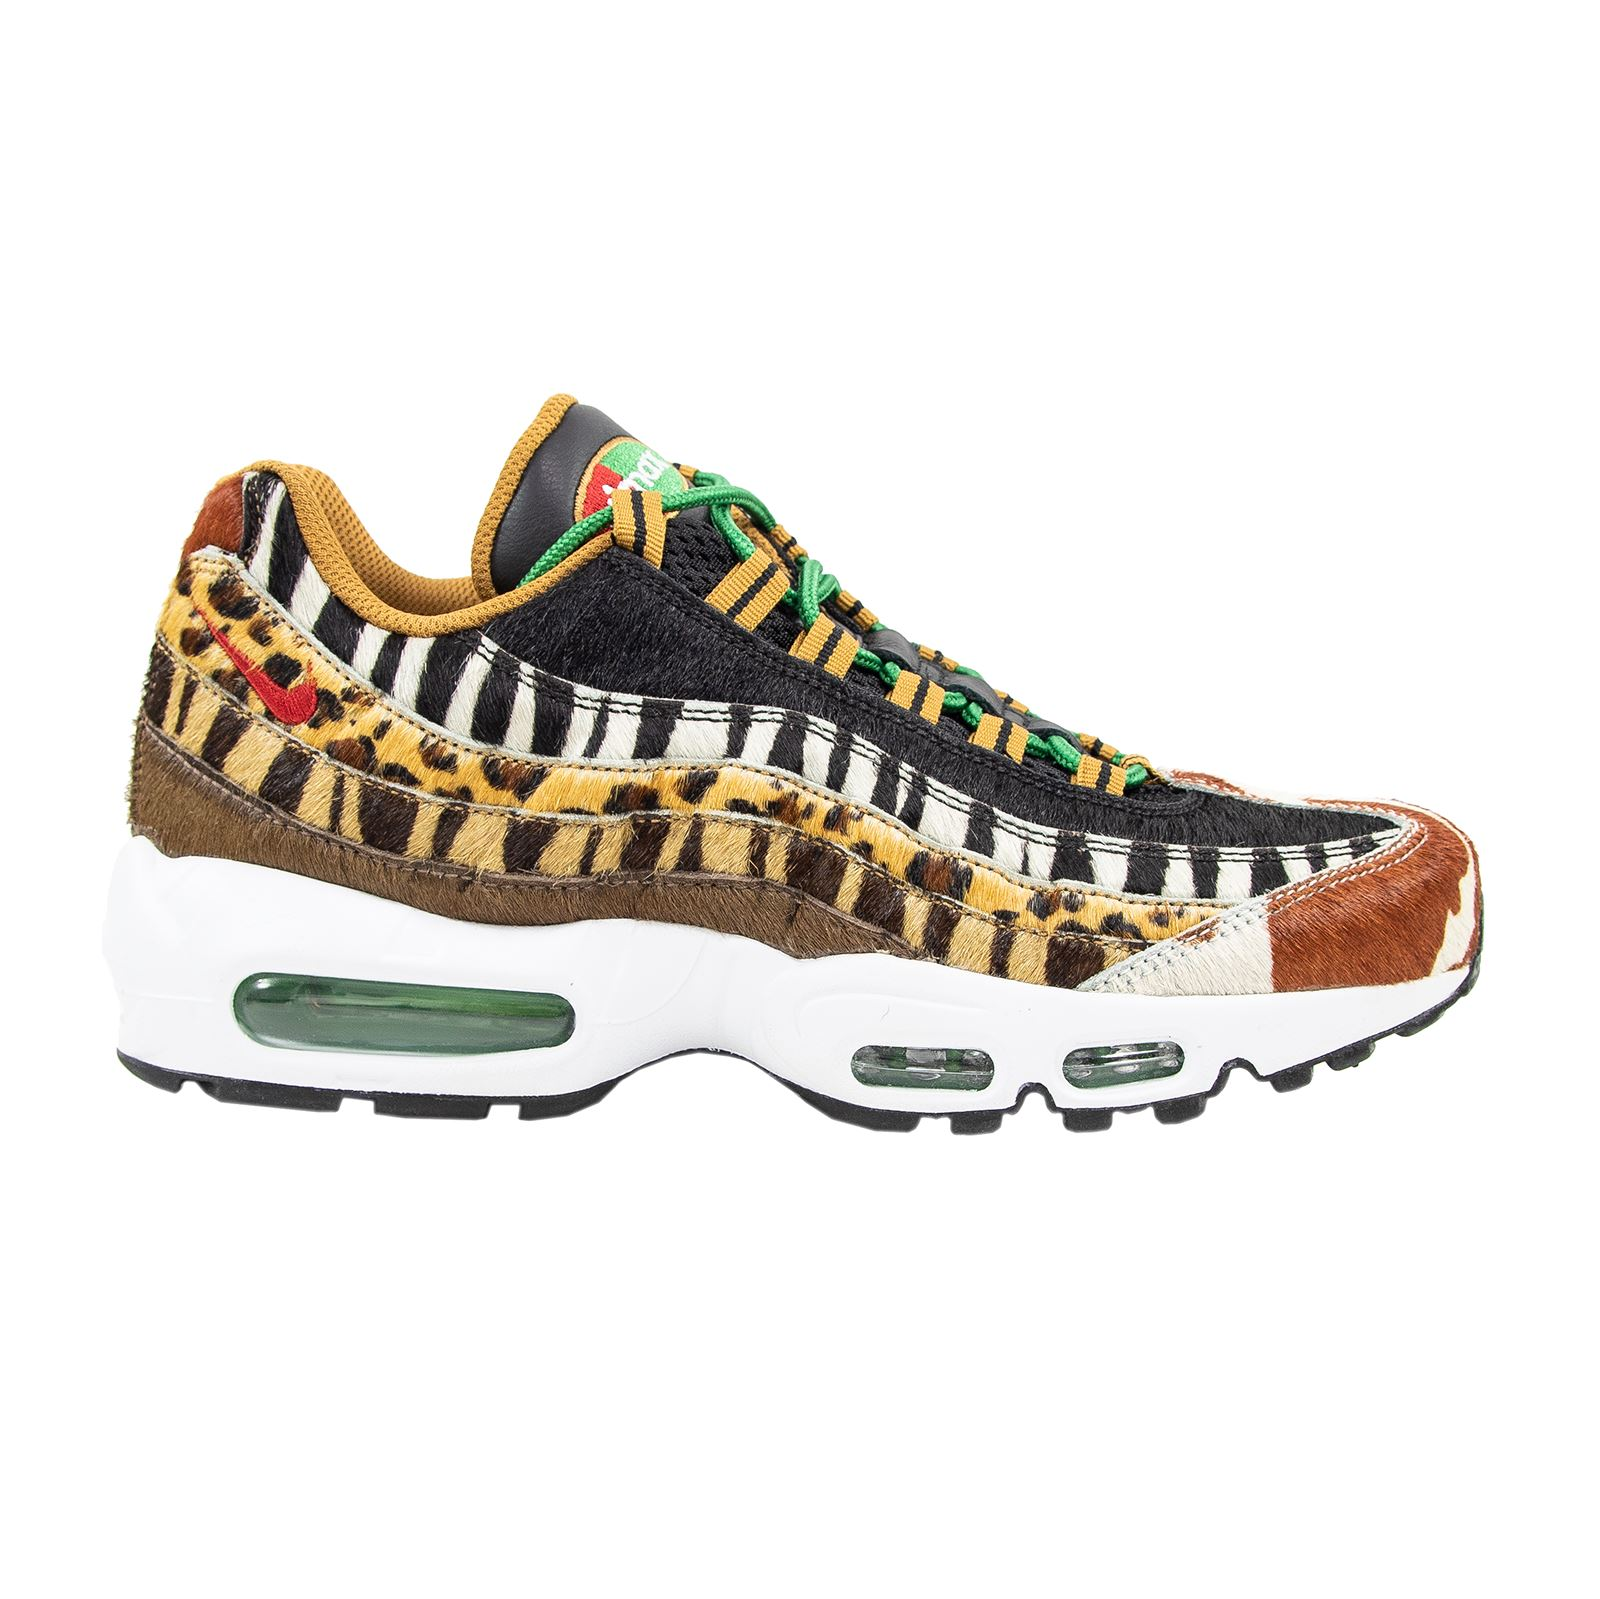 outlet store b89a9 3c60e NIB Nike x Atmos Air Max 95 DLX Ponyhair Animal Pack 2.0 Swoosh Sneakers 8US